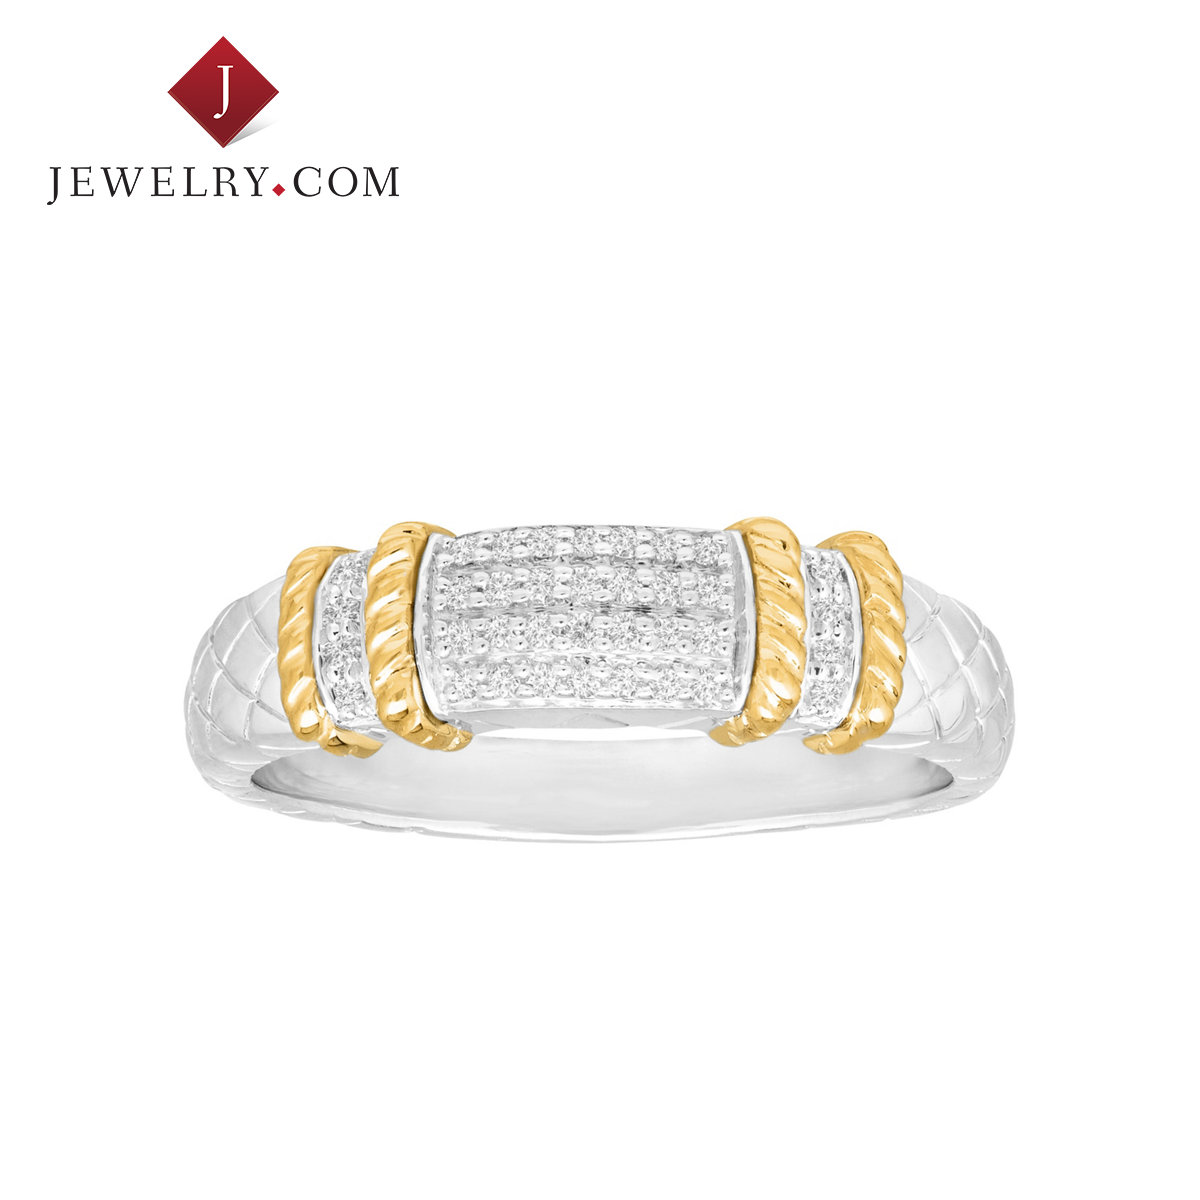 Jewelry.com official 925 silver 0.1 karat k gold inlay diamond ring european and american fashion jewelry nvjie